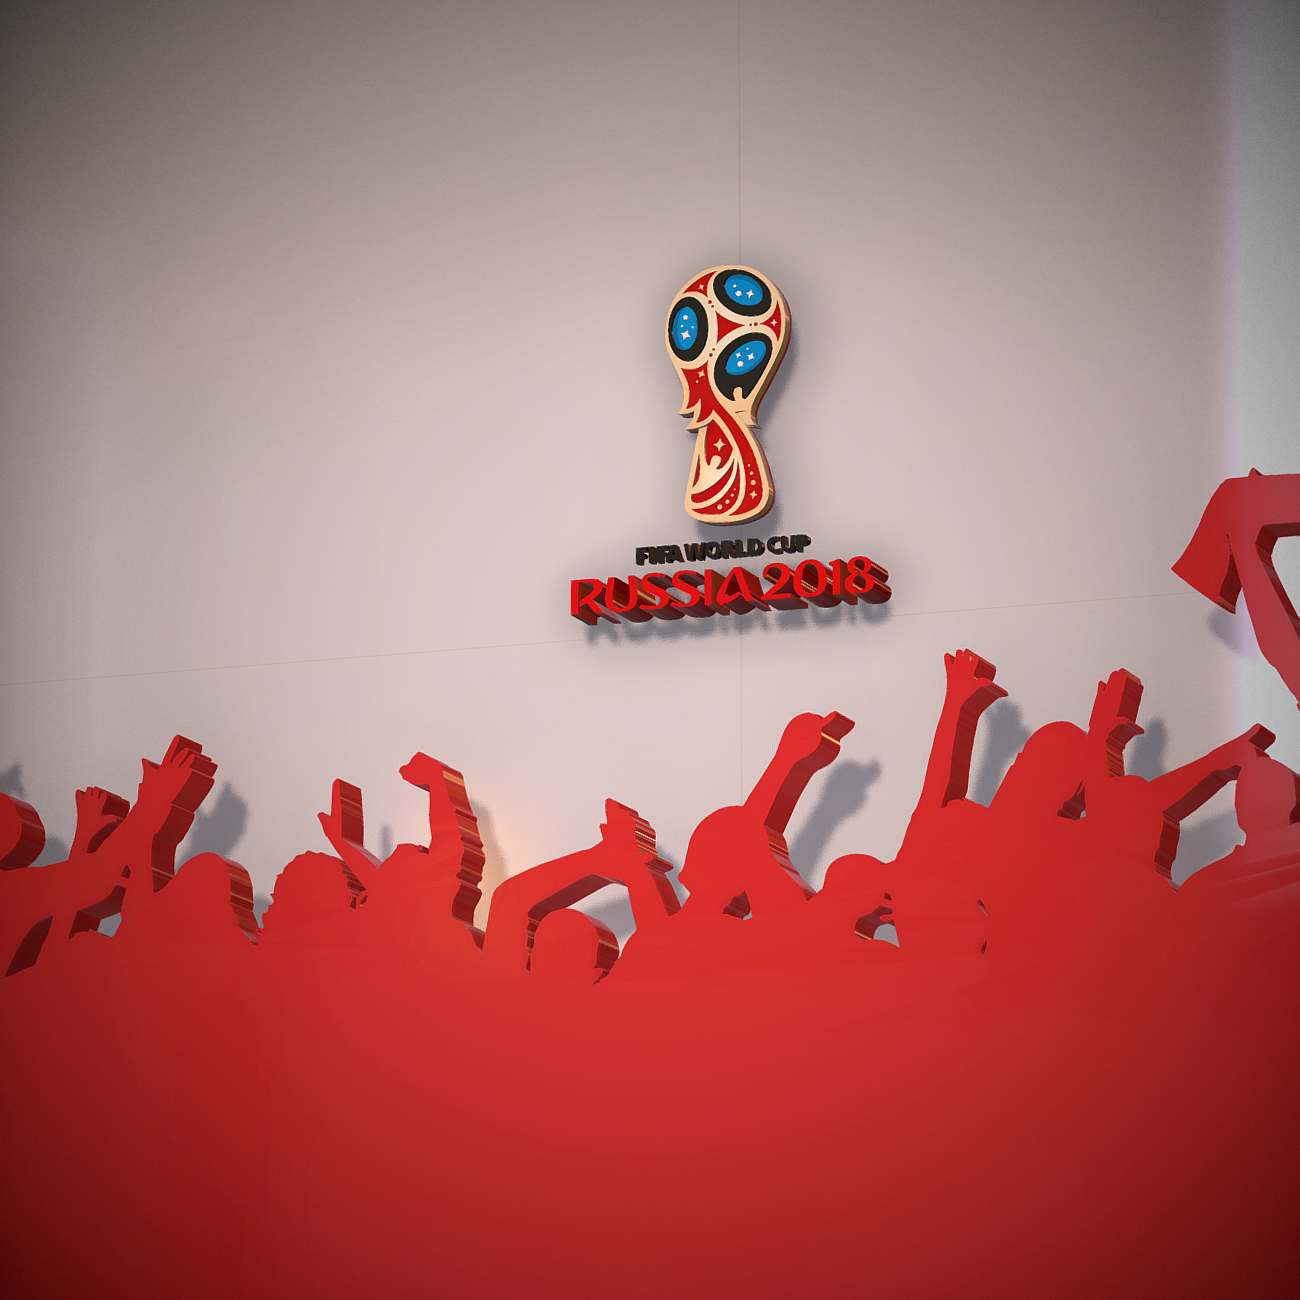 fifa world cup russia 2018 slyle 3d model 3ds max fbx ma mb obj 269749